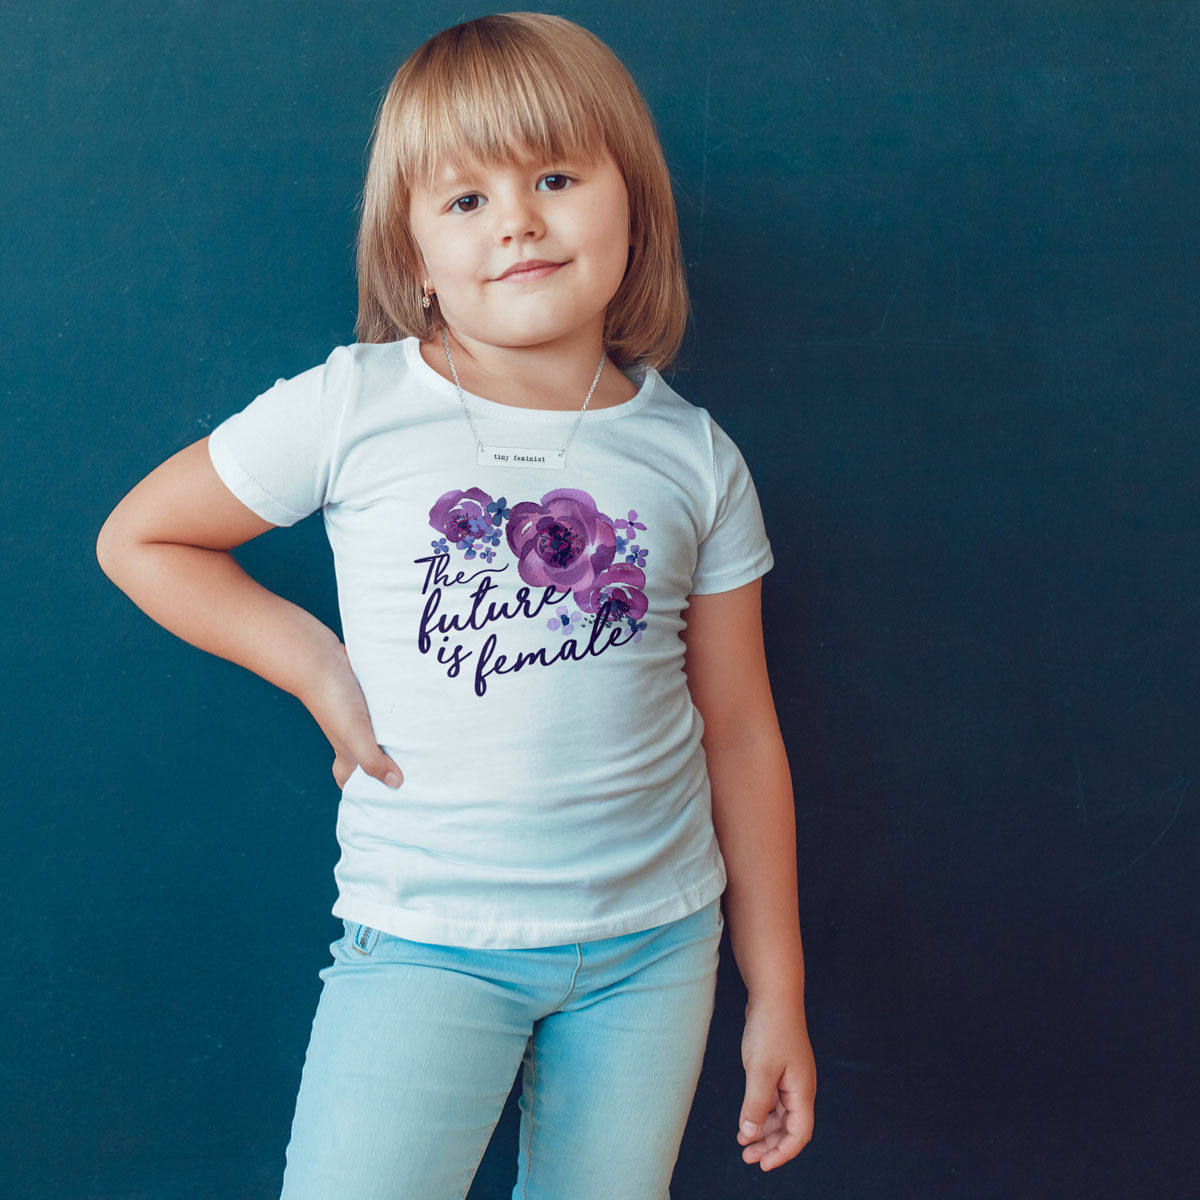 The Future is Female Toddler Softstyle T-Shirt